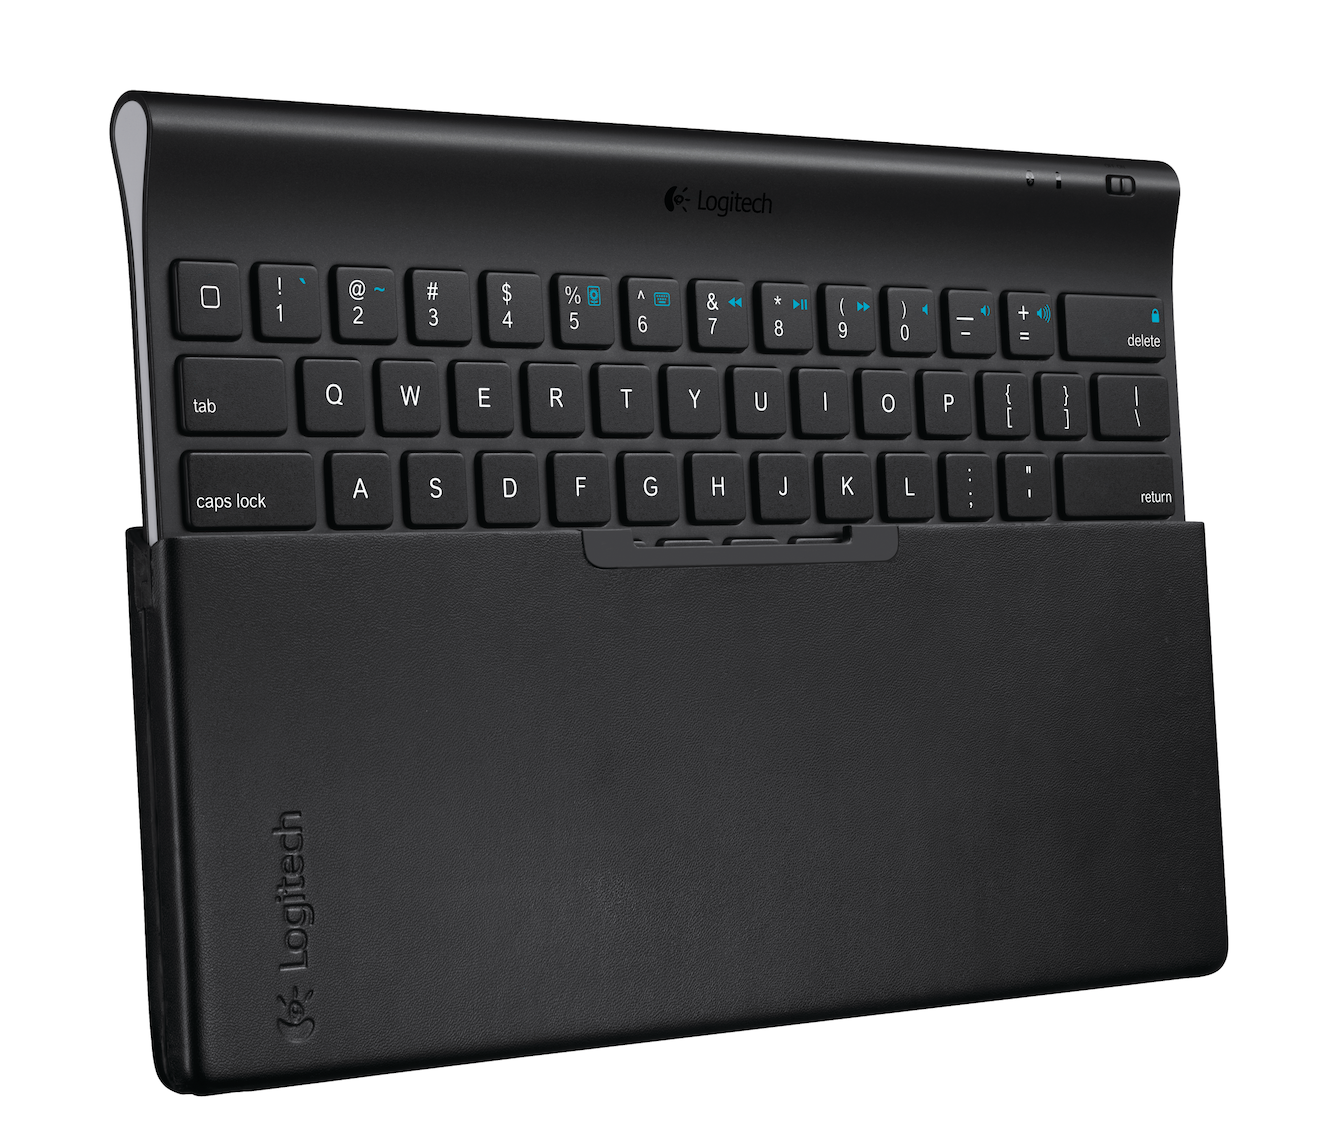 Logitech Tablet Keyboard coming out of its carrying case